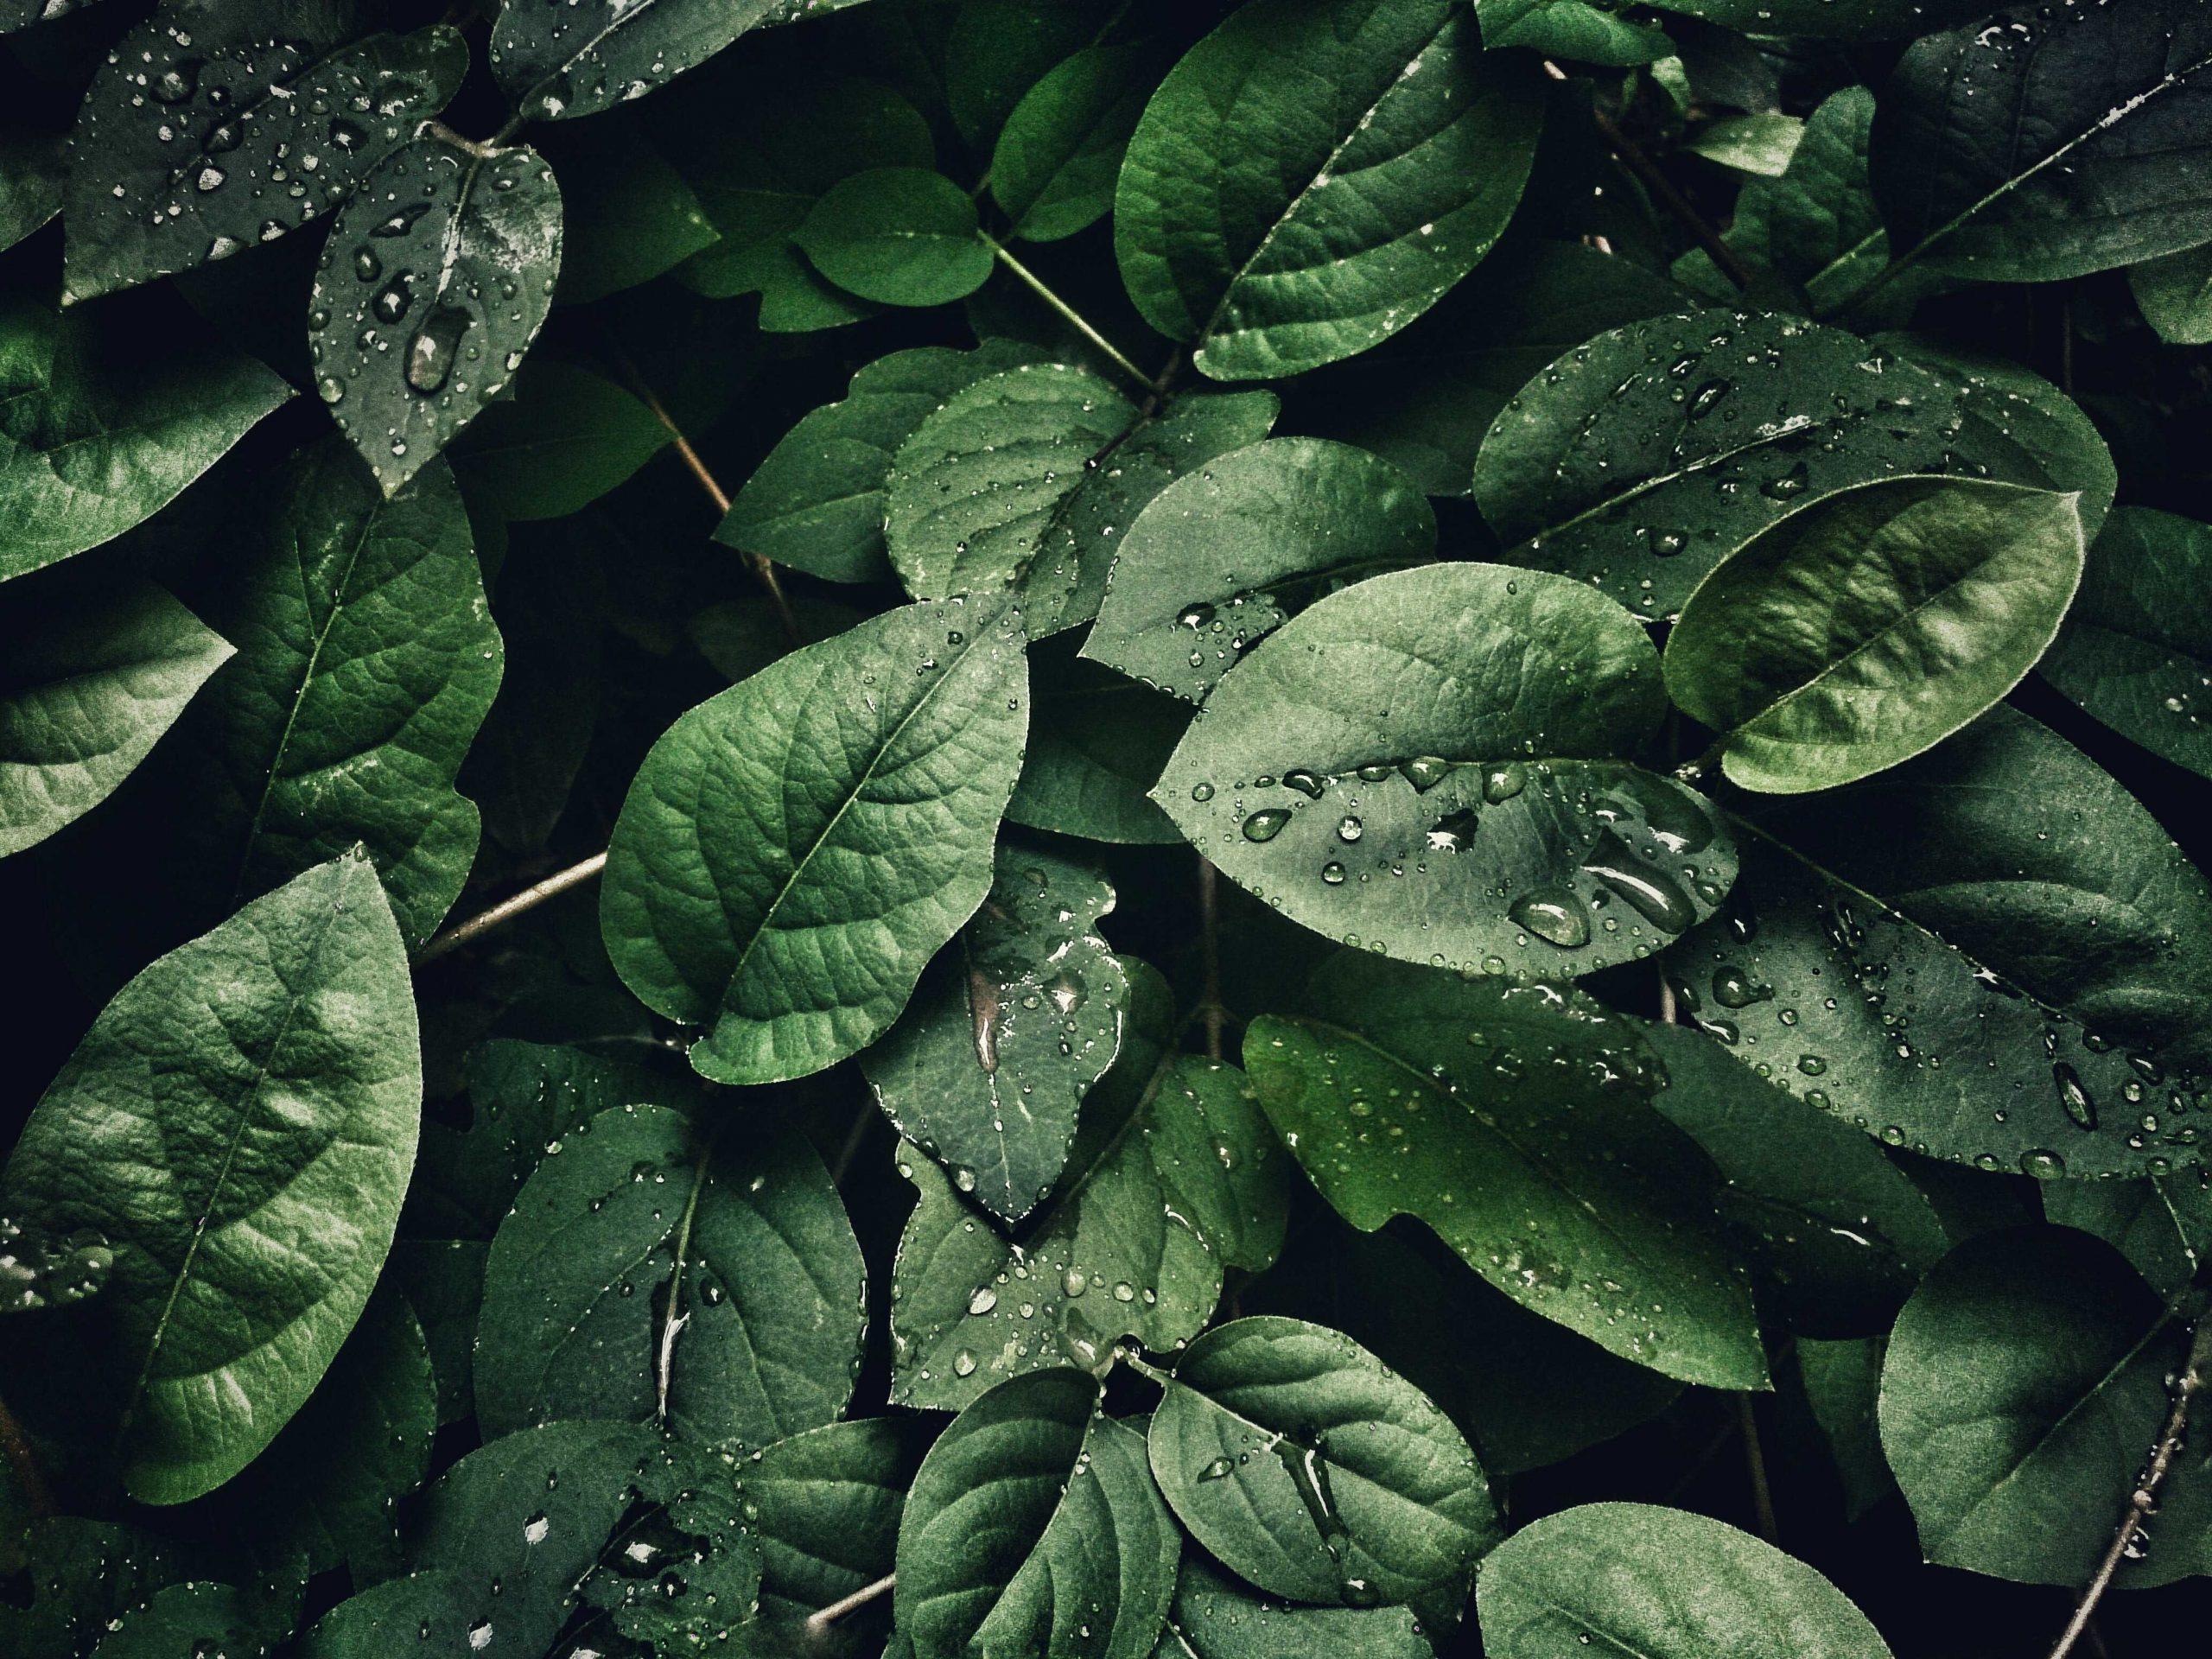 Closeup of pacific northwest leaves with water droplets